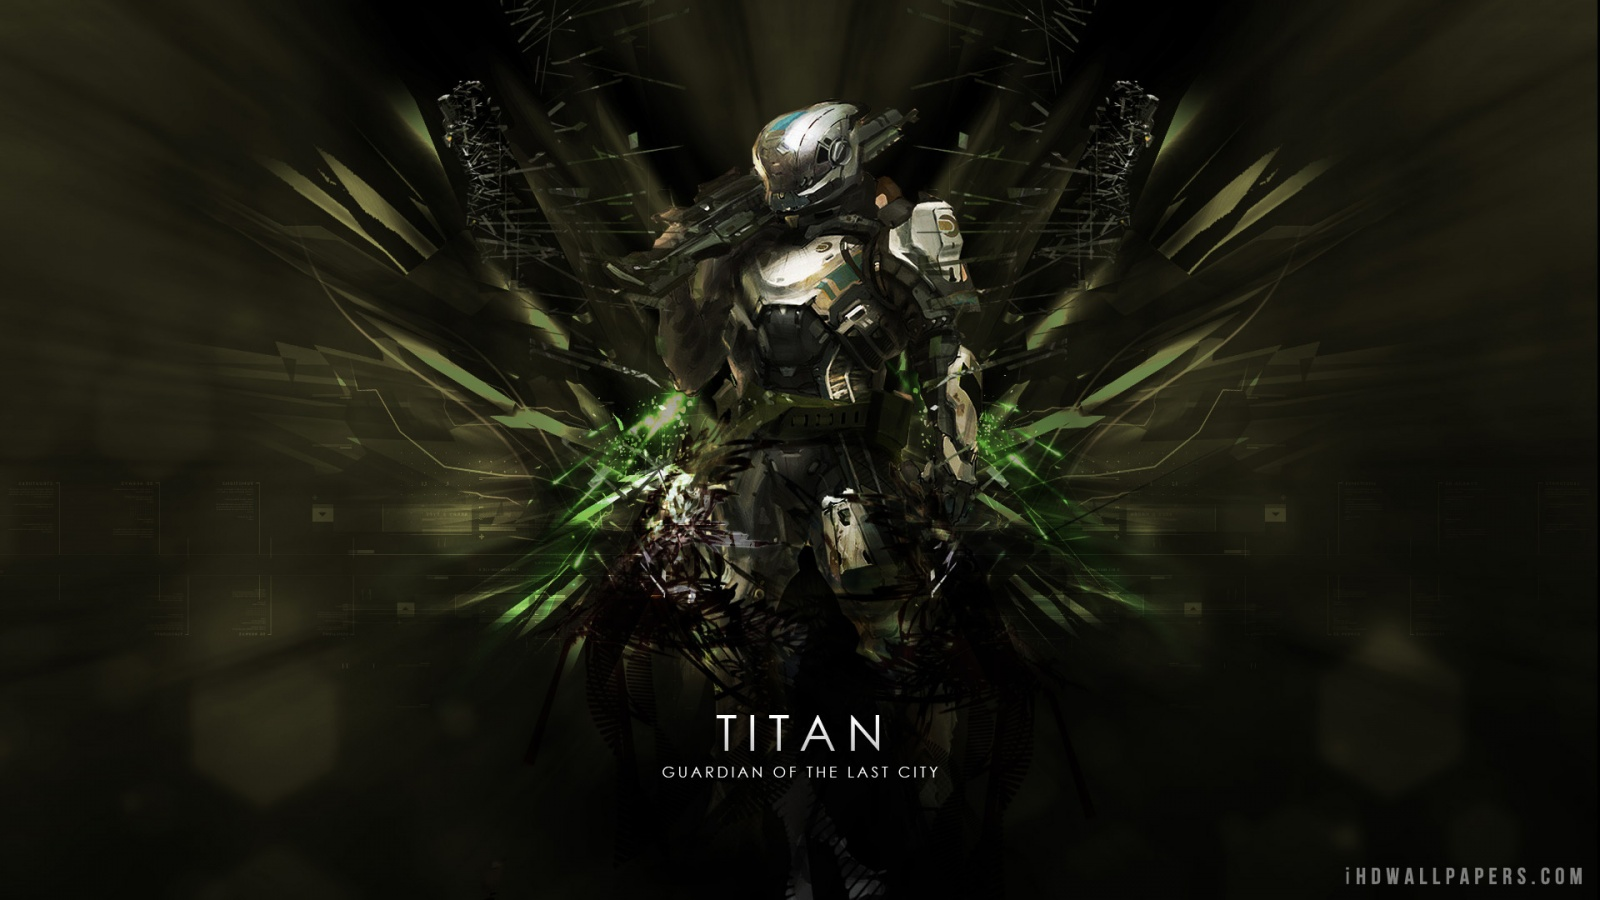 Destiny Titan HD Wallpaper   iHD Wallpapers 1600x900